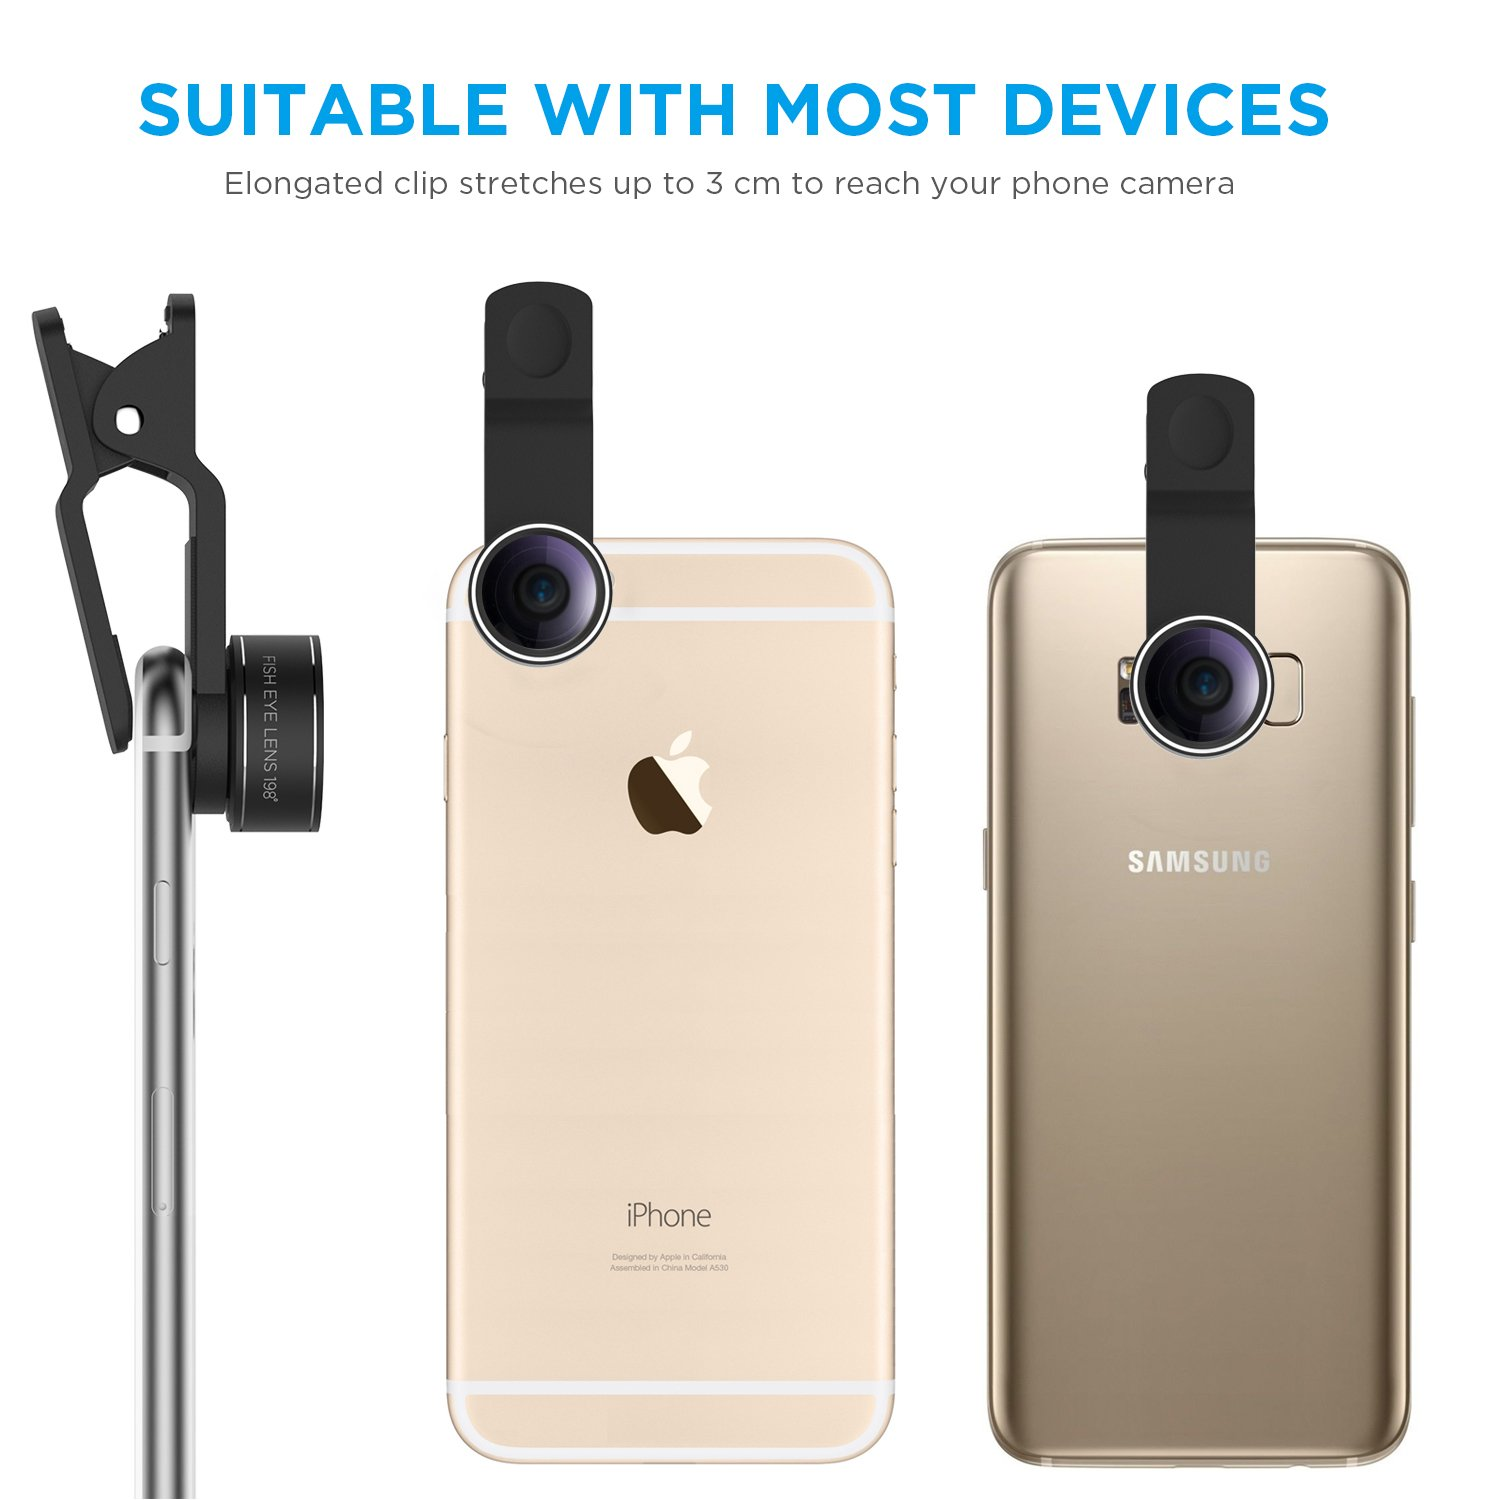 TURATA iPhone Lens 4 in 1 Lens Kits, 198°Fish Eye + 0 63X Wide Angle + 15X  Macro + CPL Lens, HD Clip-on Lens Kits for iPhone 8, 7, 6s, 6, 6 Plus, 6s